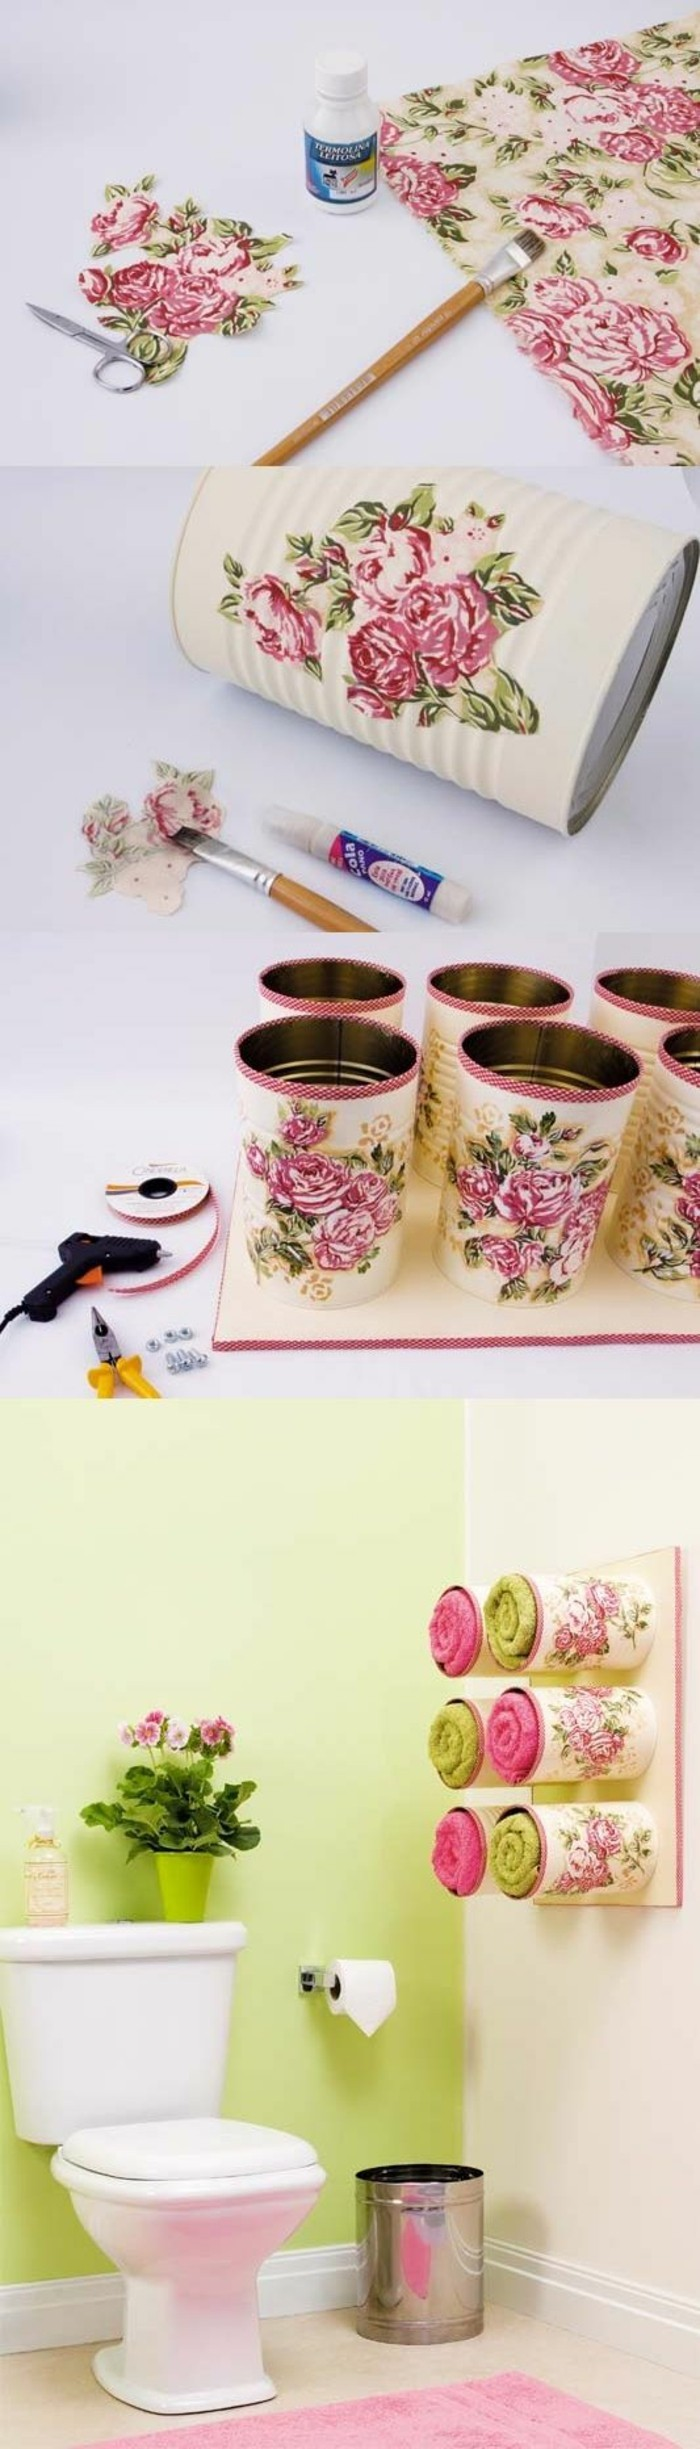 empty tin cans, floral paper and glue, near small scissors and paint brush, six large cans decorated with decoupage, containing towels and stuck on wooden board, mounted on a toilet wall